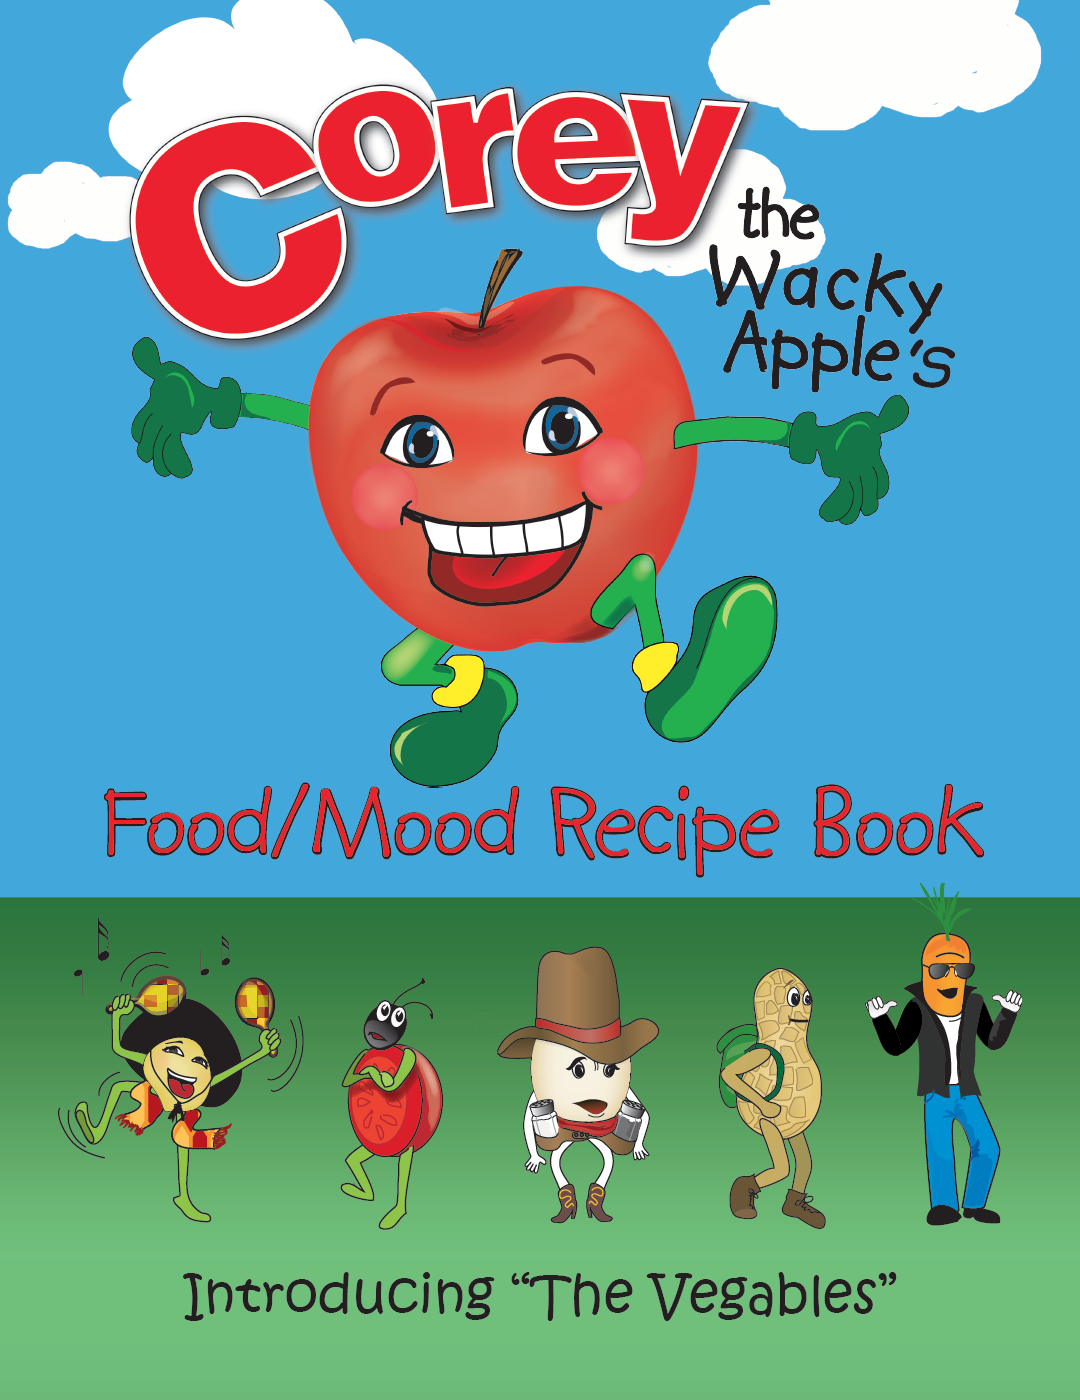 Corey's Food/Mood Recipe Book